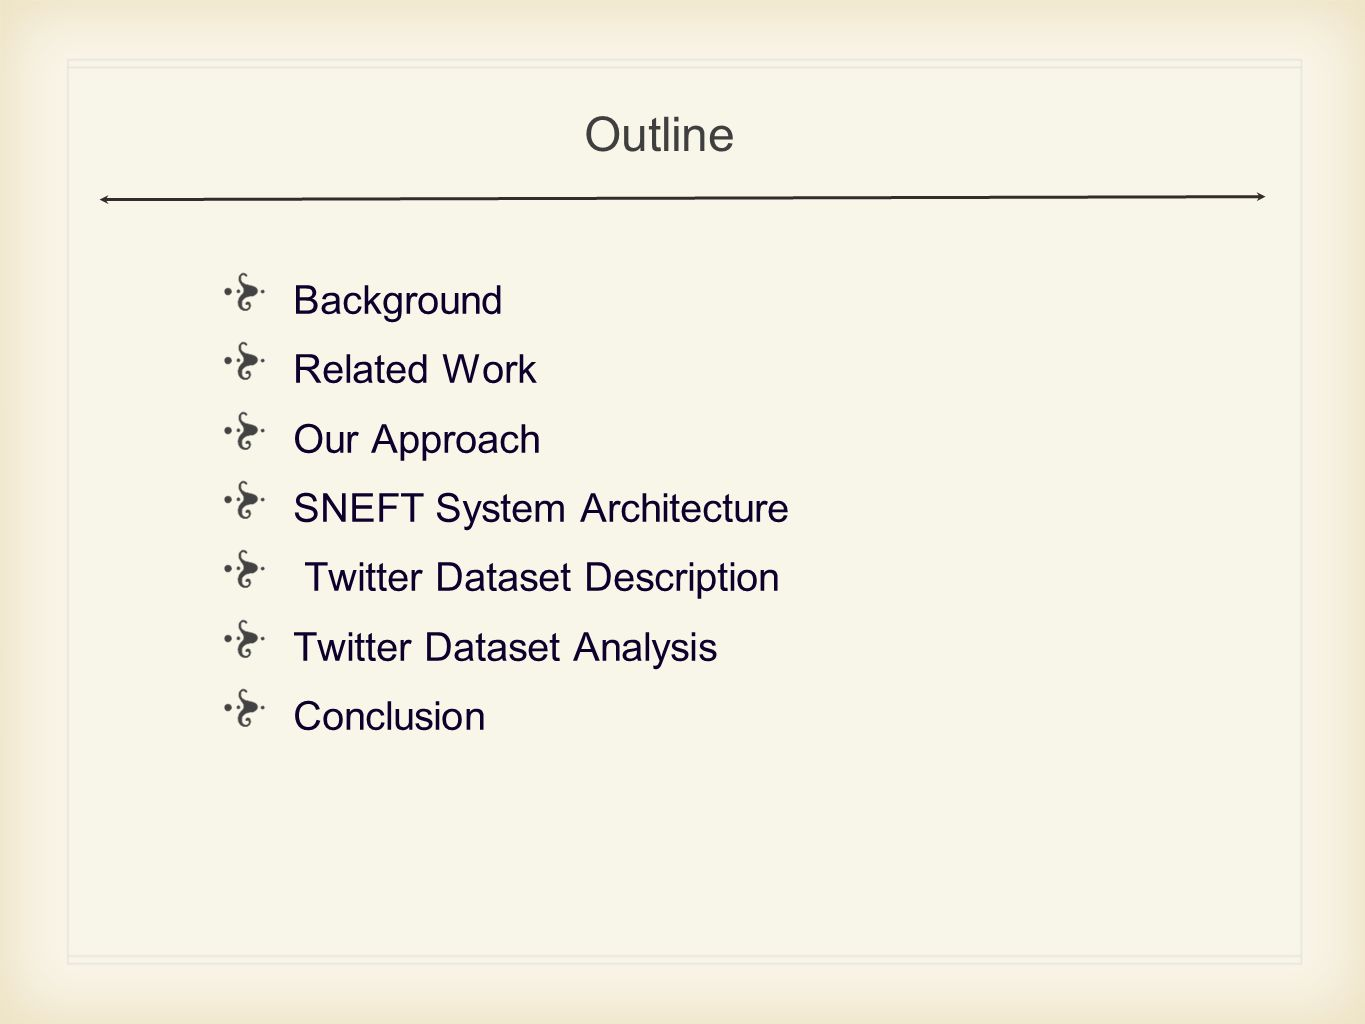 Background Related Work Our Approach SNEFT System Architecture Twitter Dataset Description Twitter Dataset Analysis Conclusion Outline